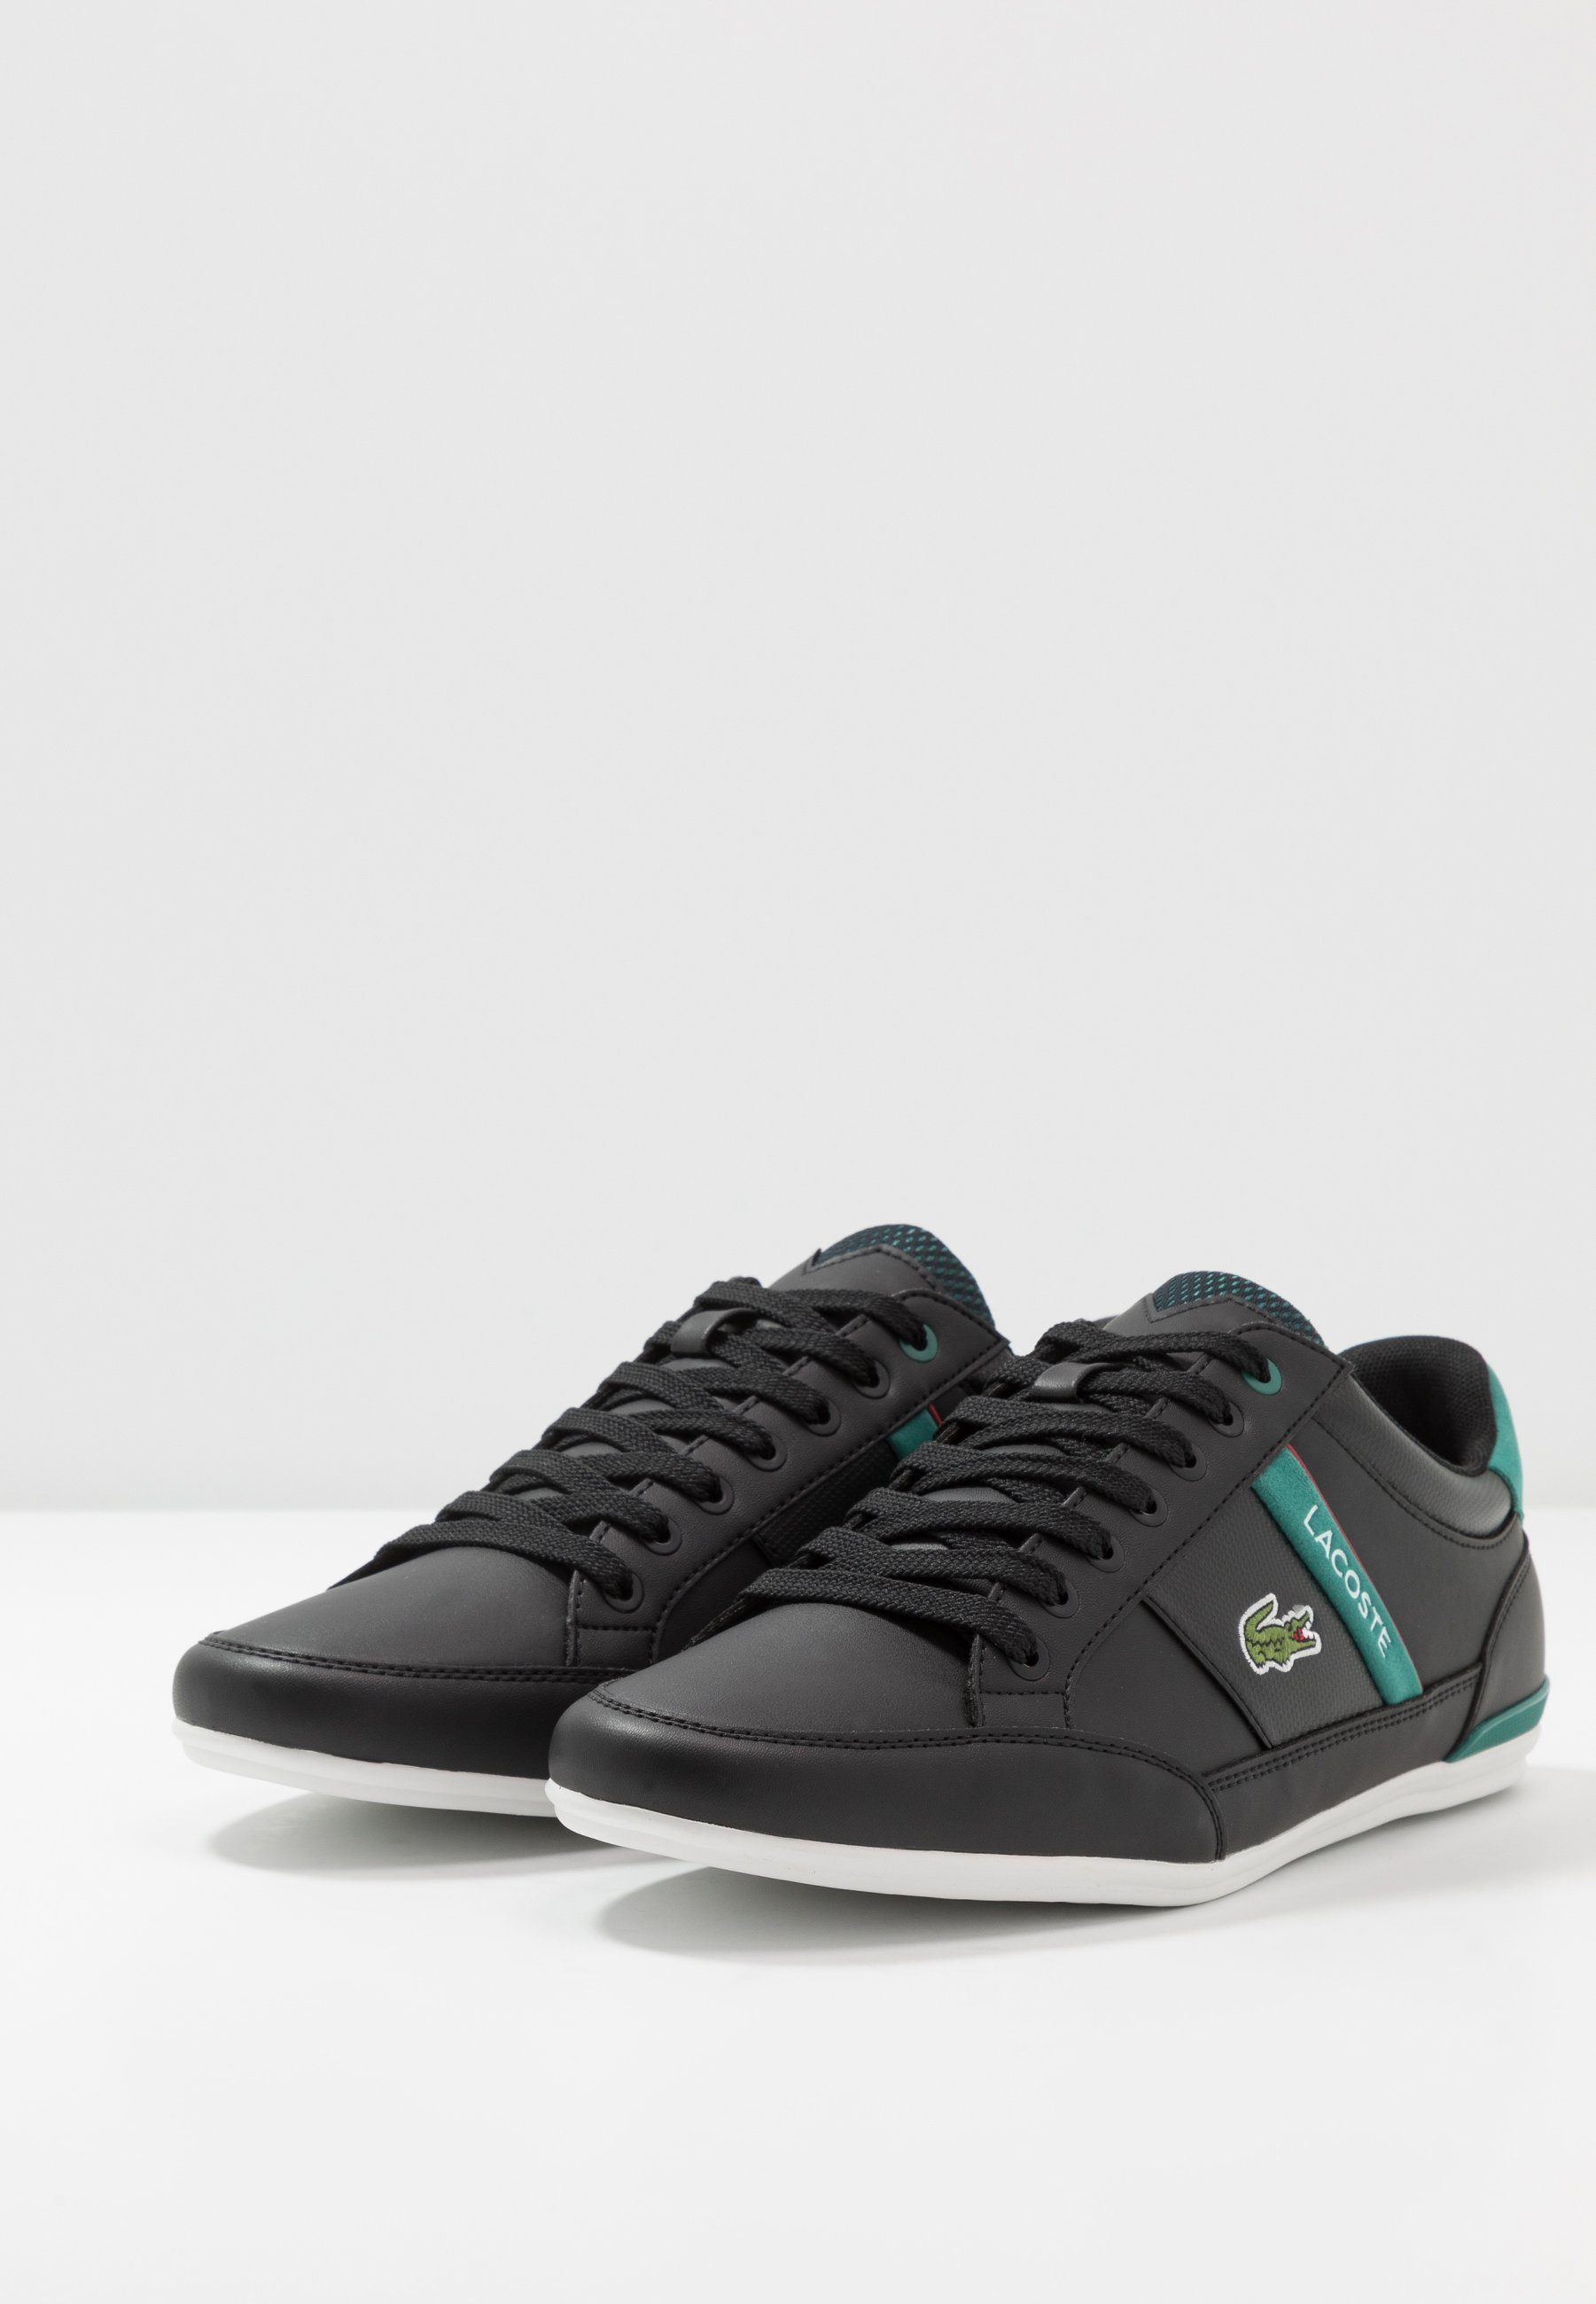 Lacoste Chaymon - Sneakers Black/green